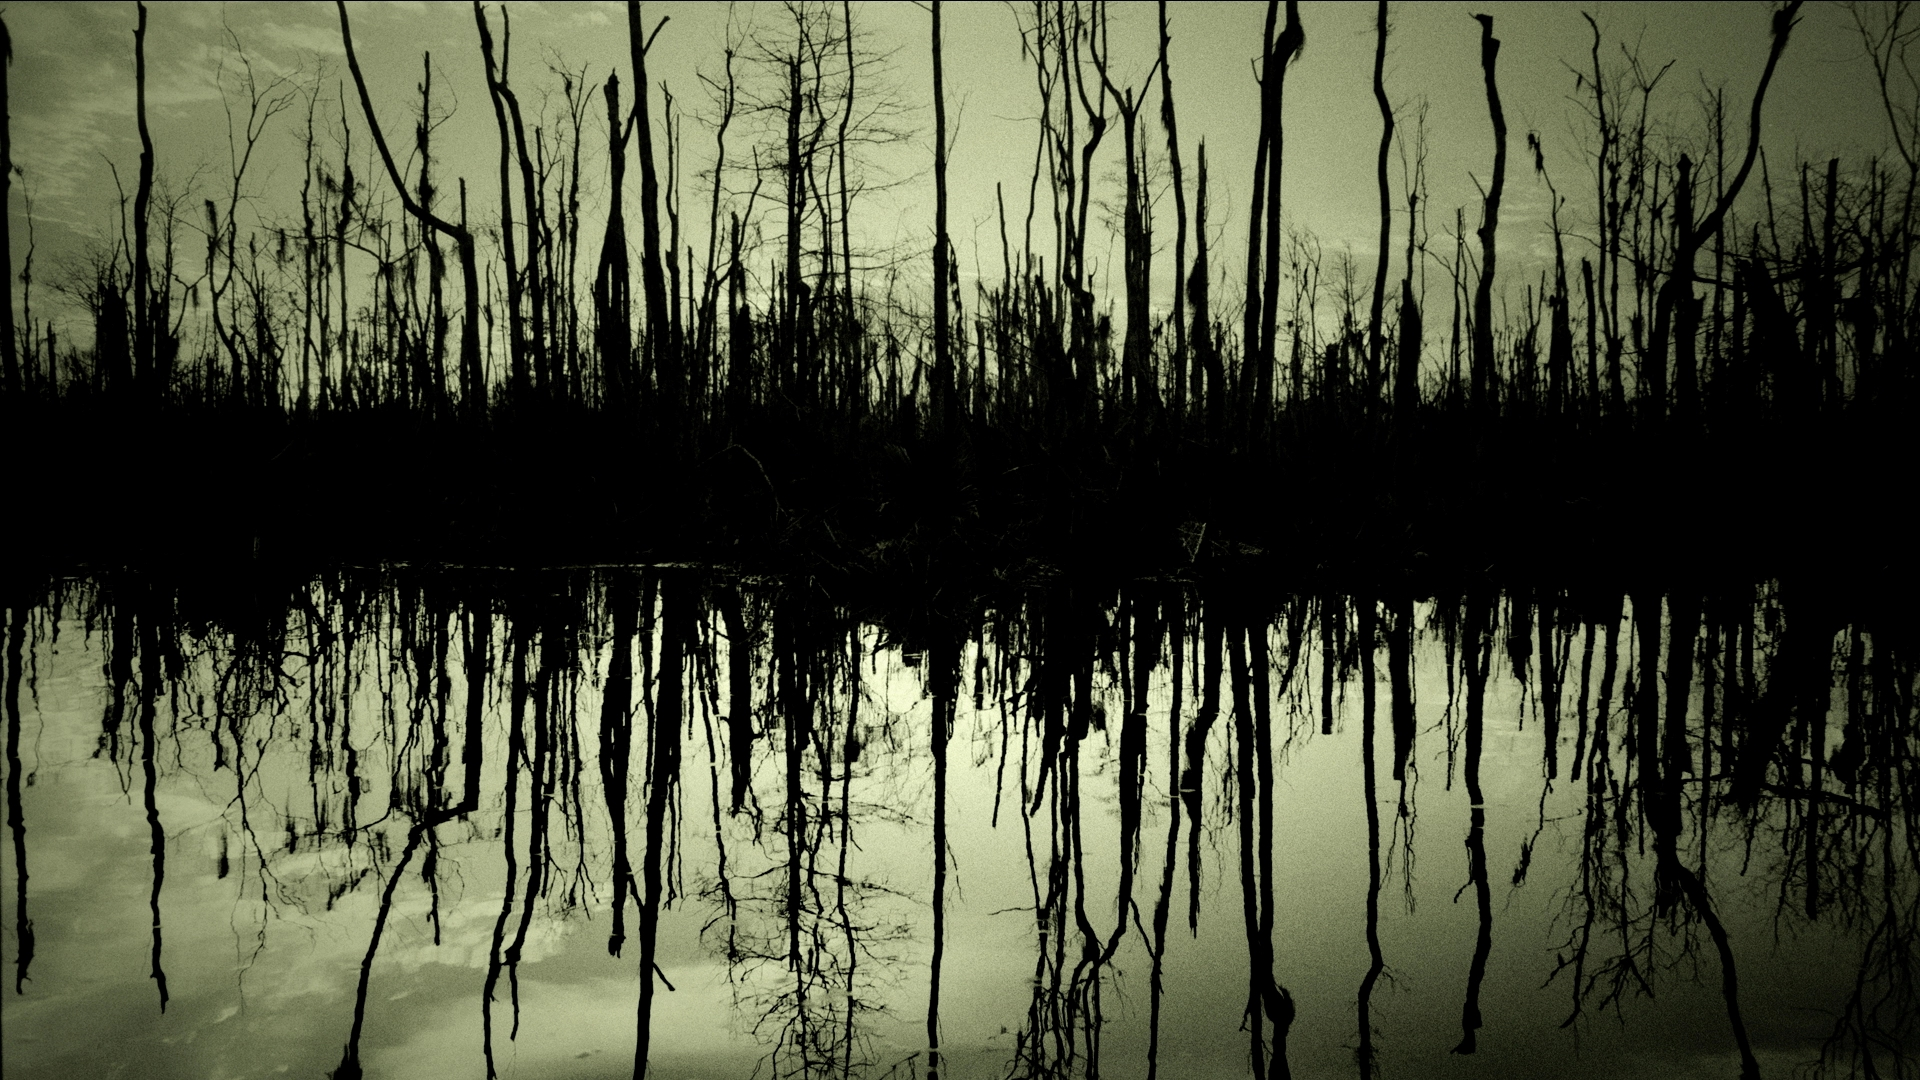 wallpapers wallpaper swamp trees winter background images 1920x1080